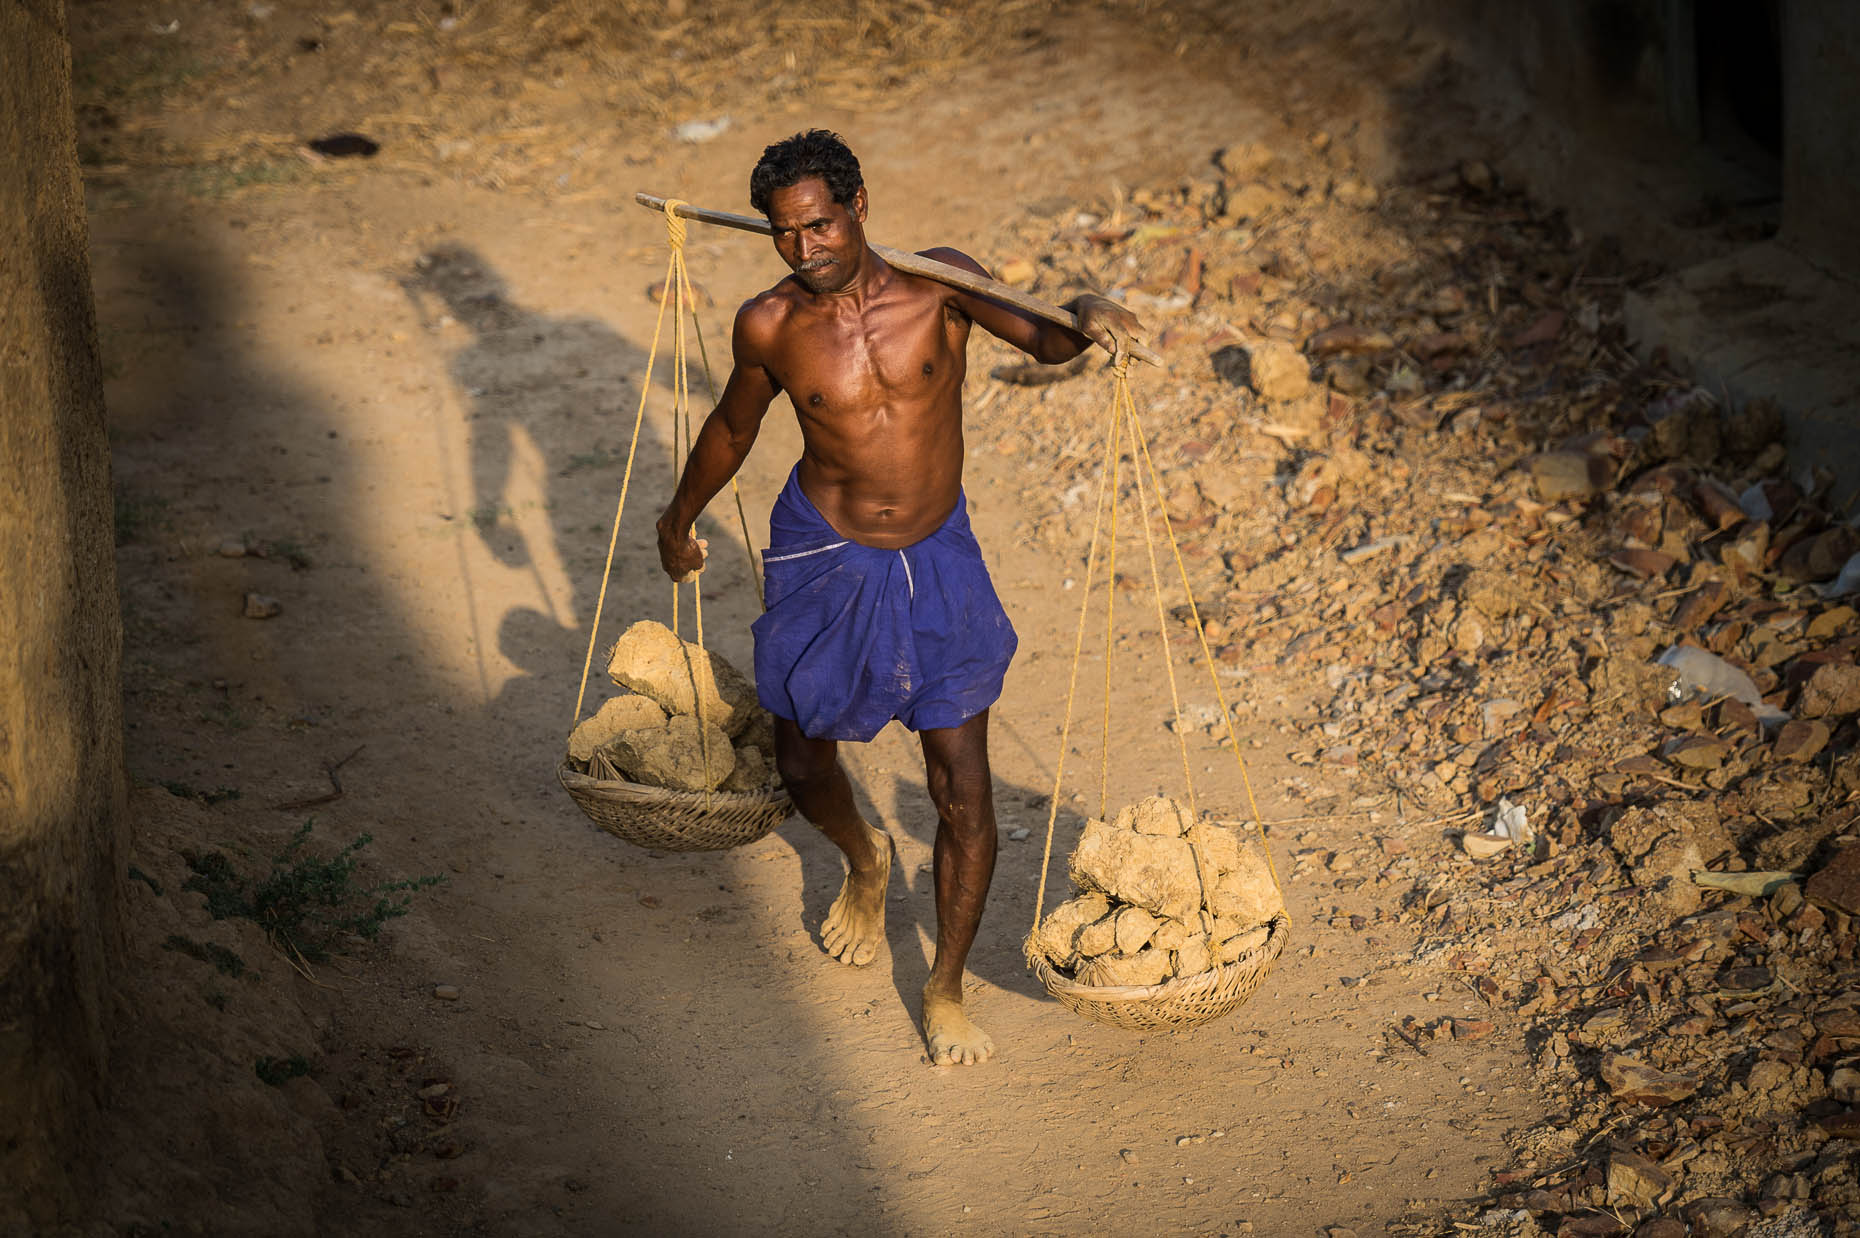 Dayworker-in-India-carrying-heavy-load-of-rocks